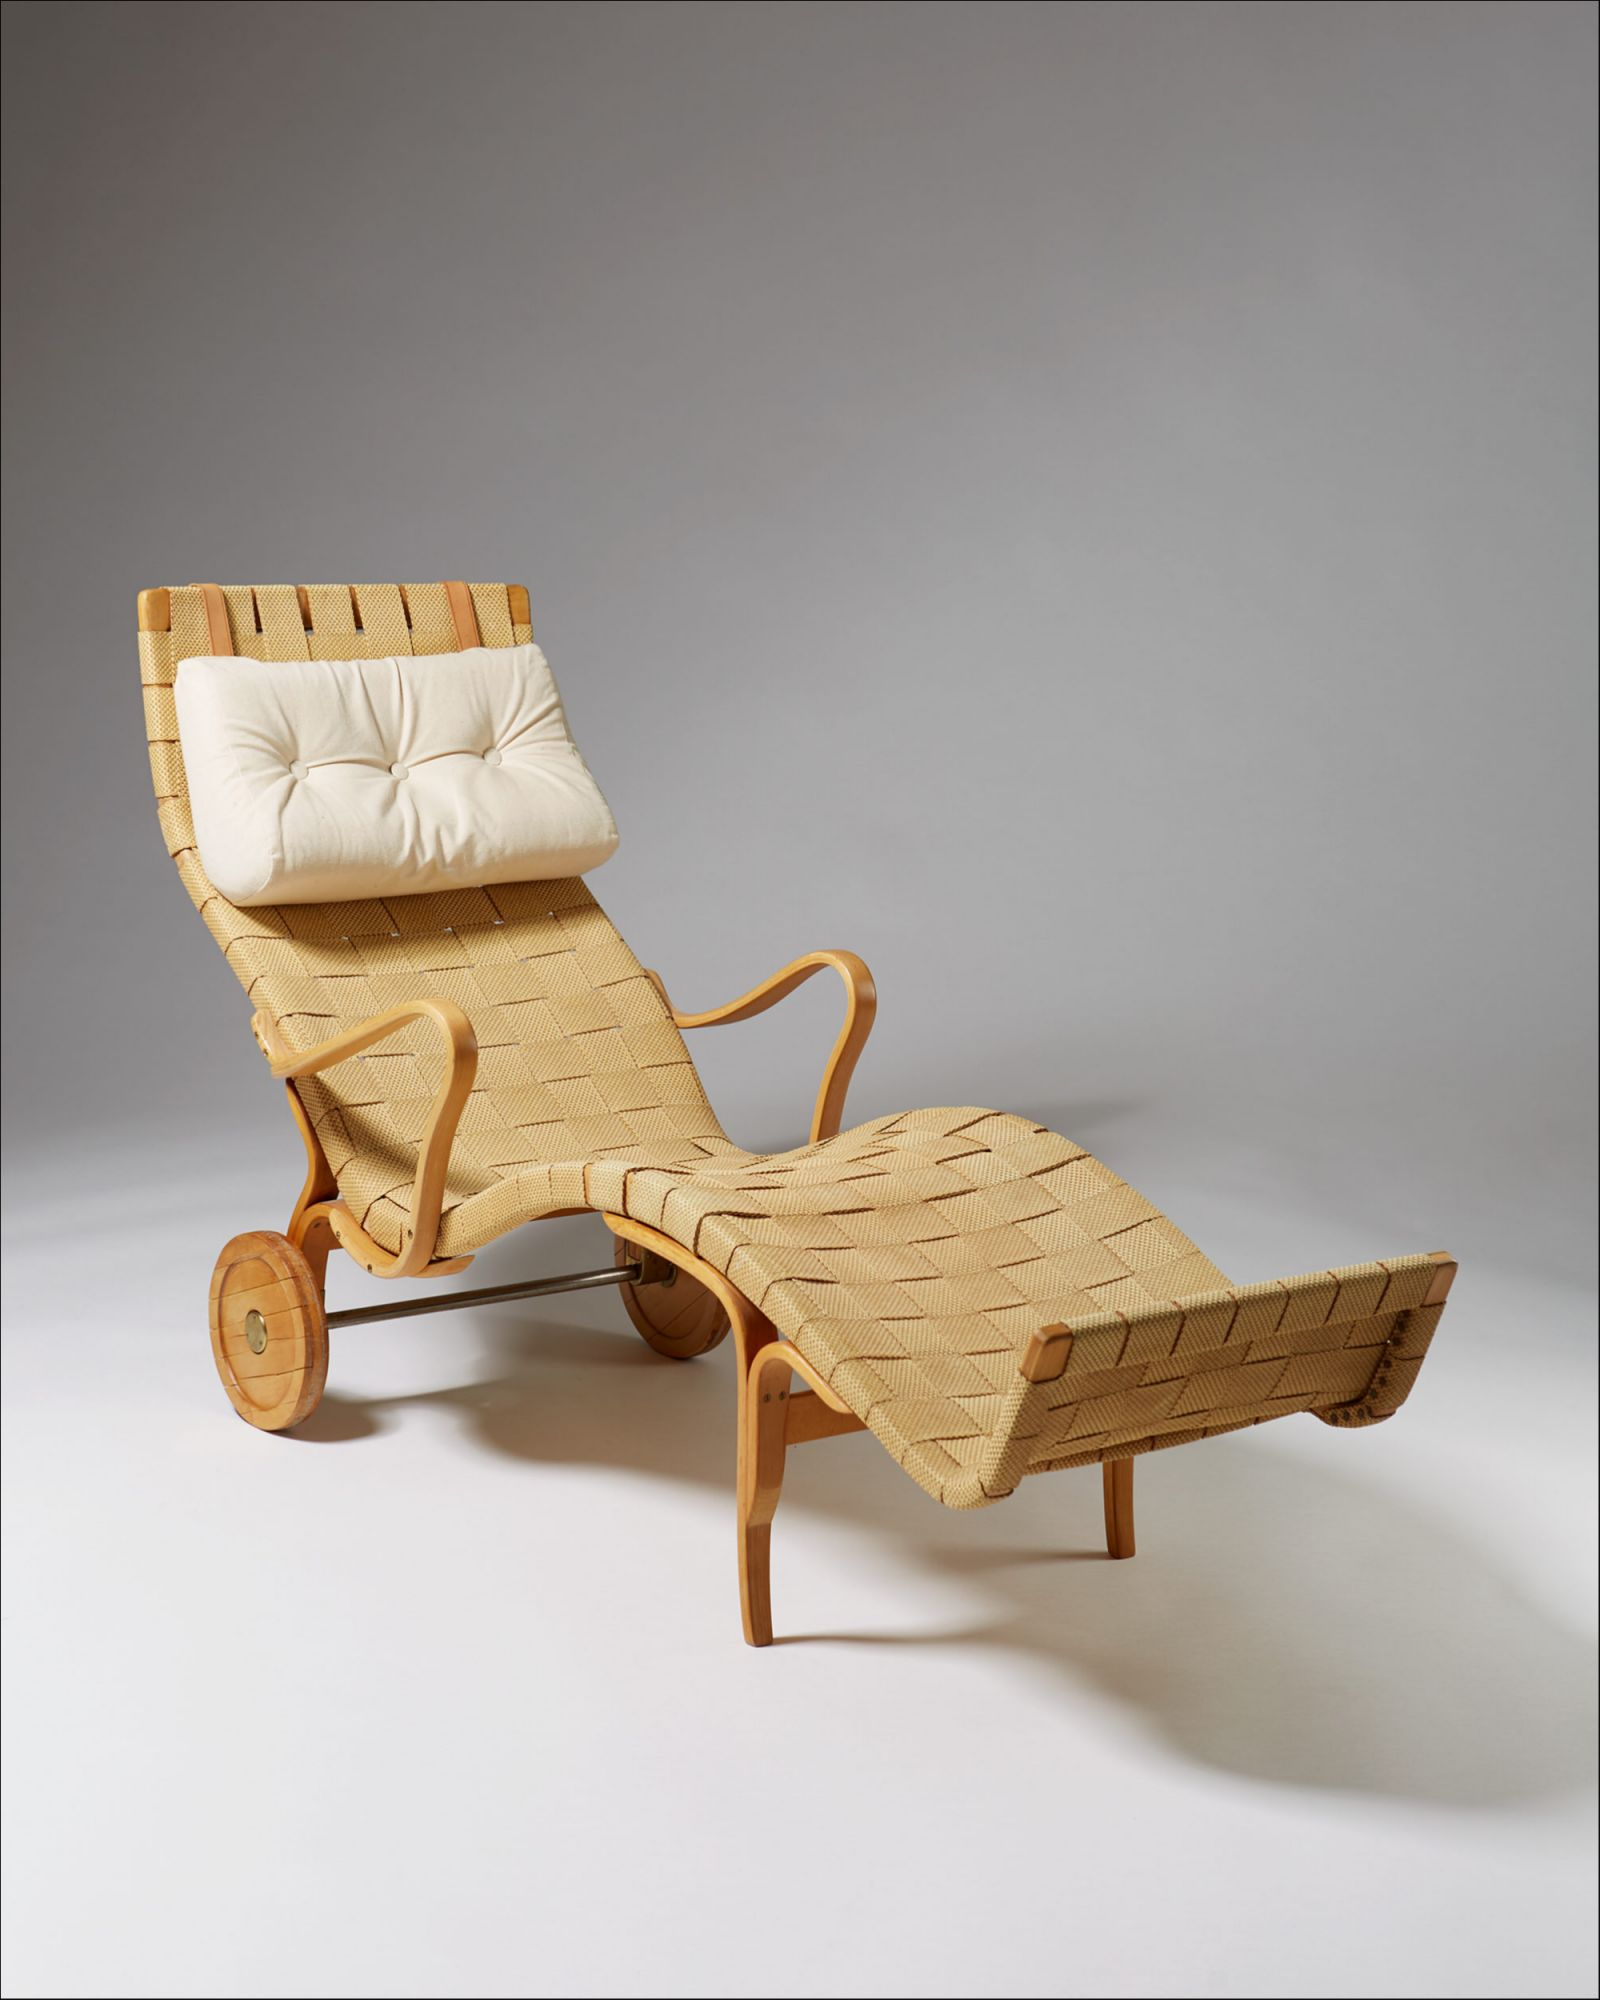 By 1940's For Bruno Mathsson MathssonSweden Chaise Longue Karl bvf6gIyY7